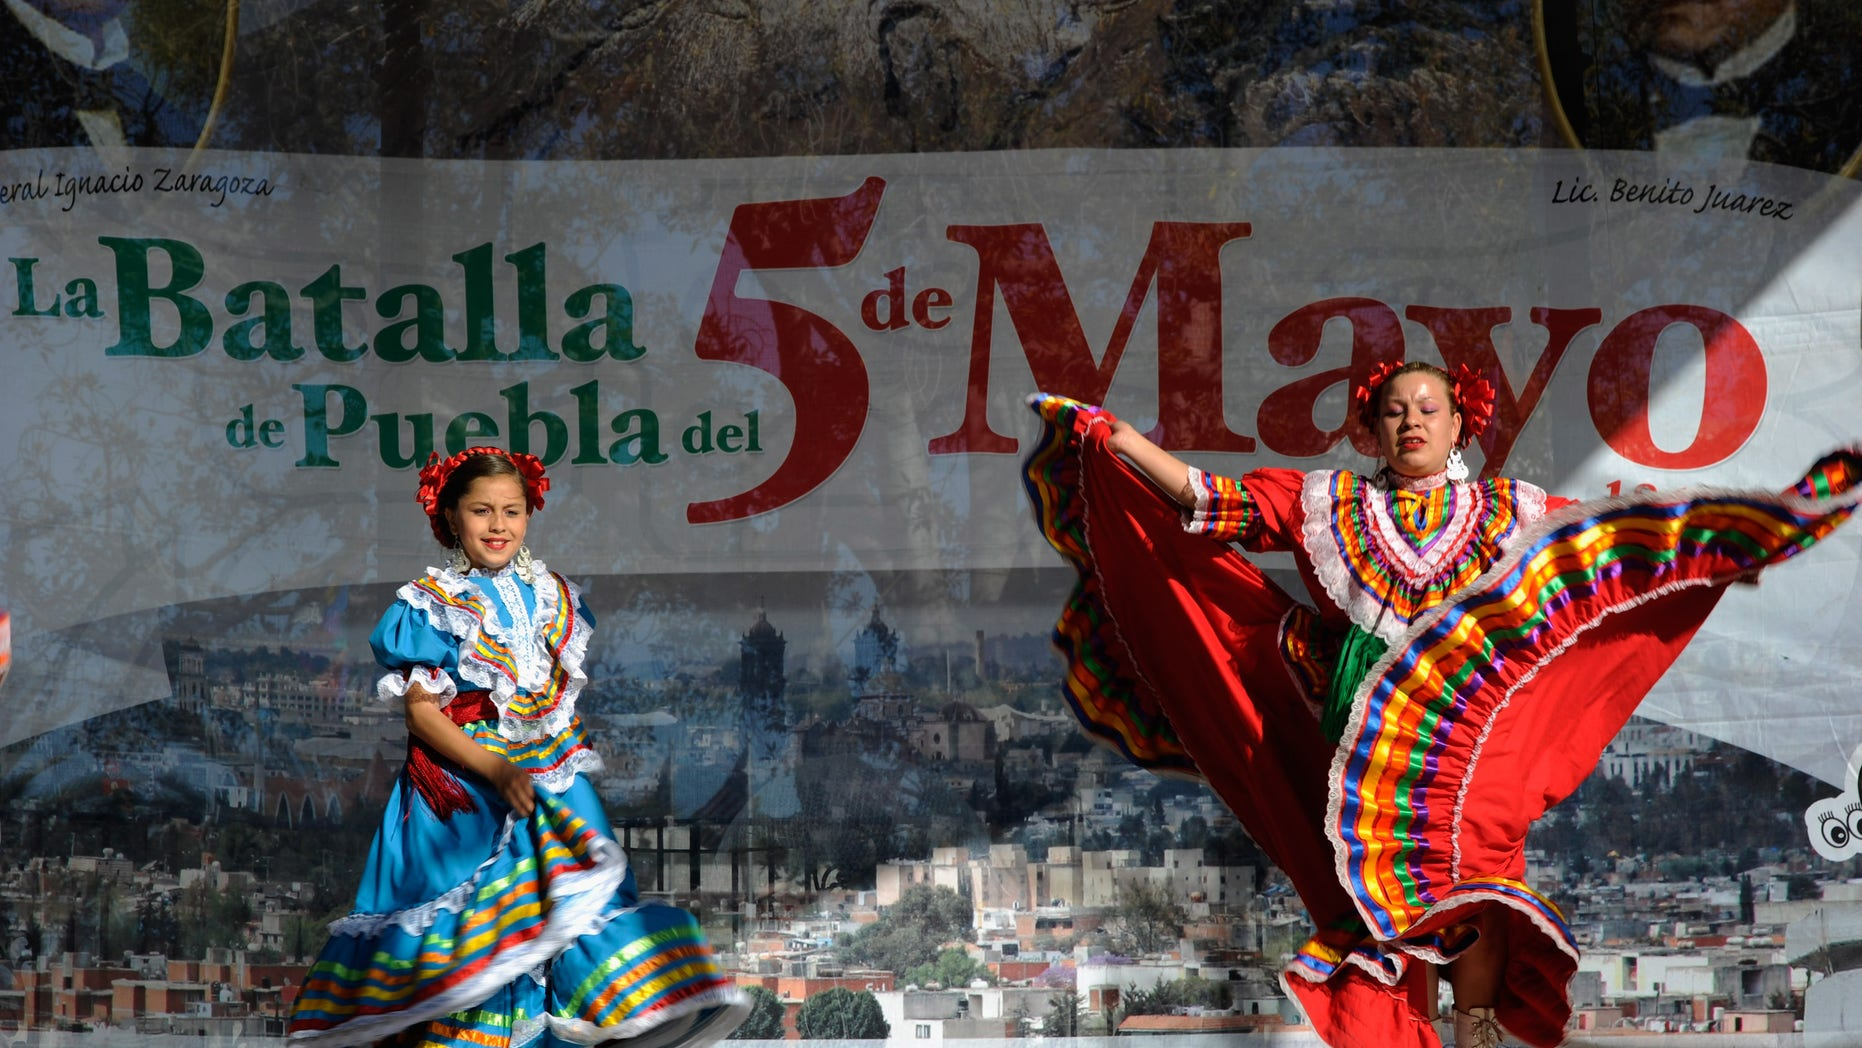 LOS ANGELES, CA - MAY 05:  Aracely Saucillo (L) and Marylin Castillo perform with Mexica Ballet Folclorico performs during Cinco De Mayo festivities on May 5, 2011 at El Pueblo de Los Angeles Historic Site on Olvera Street in downtown Los Angeles, California. Cinco de Mayo celebrates the 1862 Mexican victory over the French in the Battle of Puebla.  (Photo by Kevork Djansezian/Getty Images)